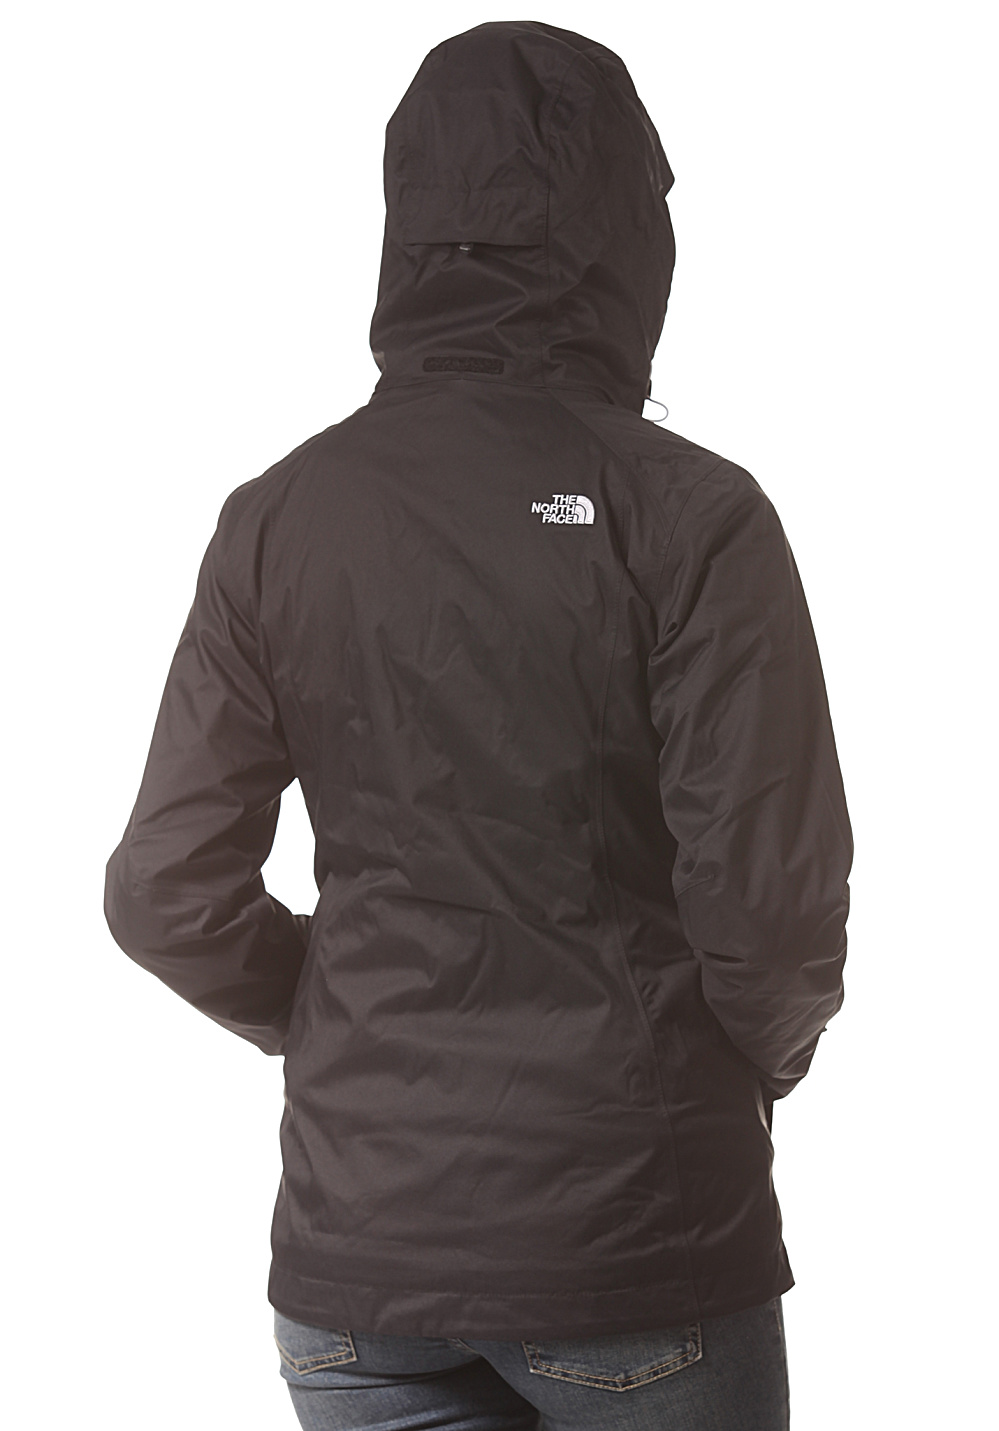 Next. -5%. THE NORTH FACE. Evolve II Triclimate - Giacca tecnica ... 436fd56f8158